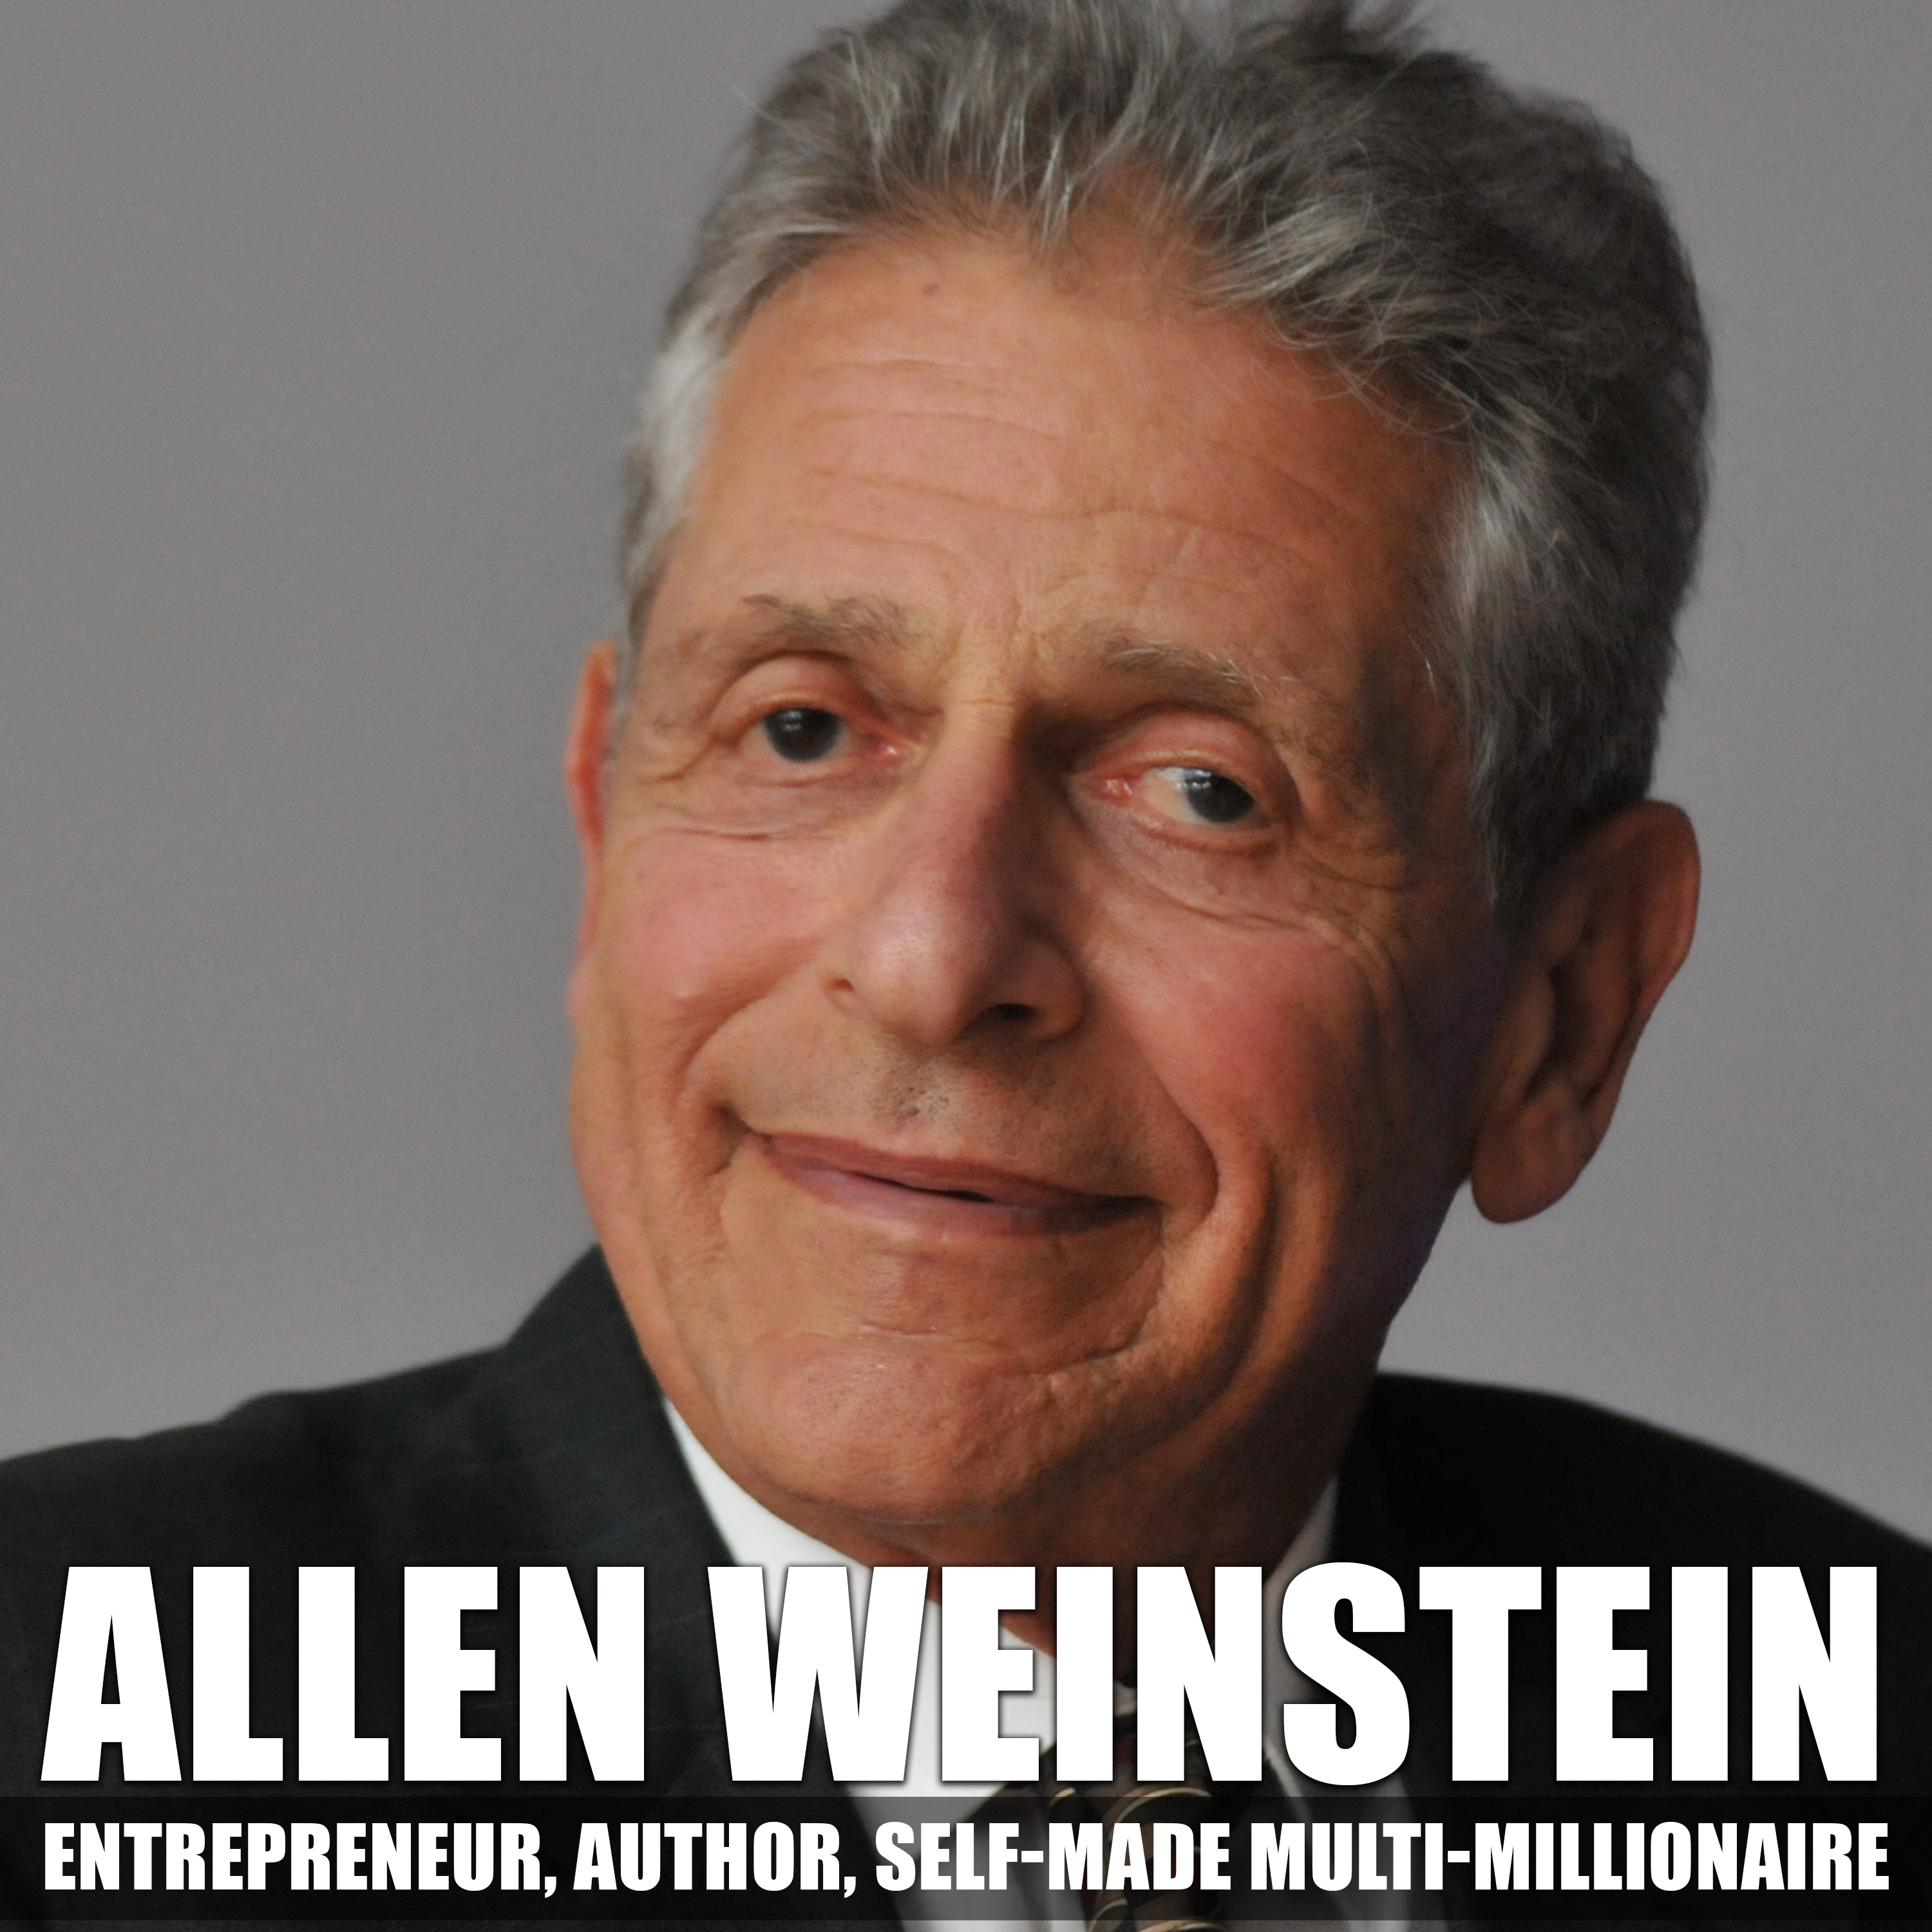 Allen Weinstein - Entrepreneur, Author, Self-Made Multi-Millionaire